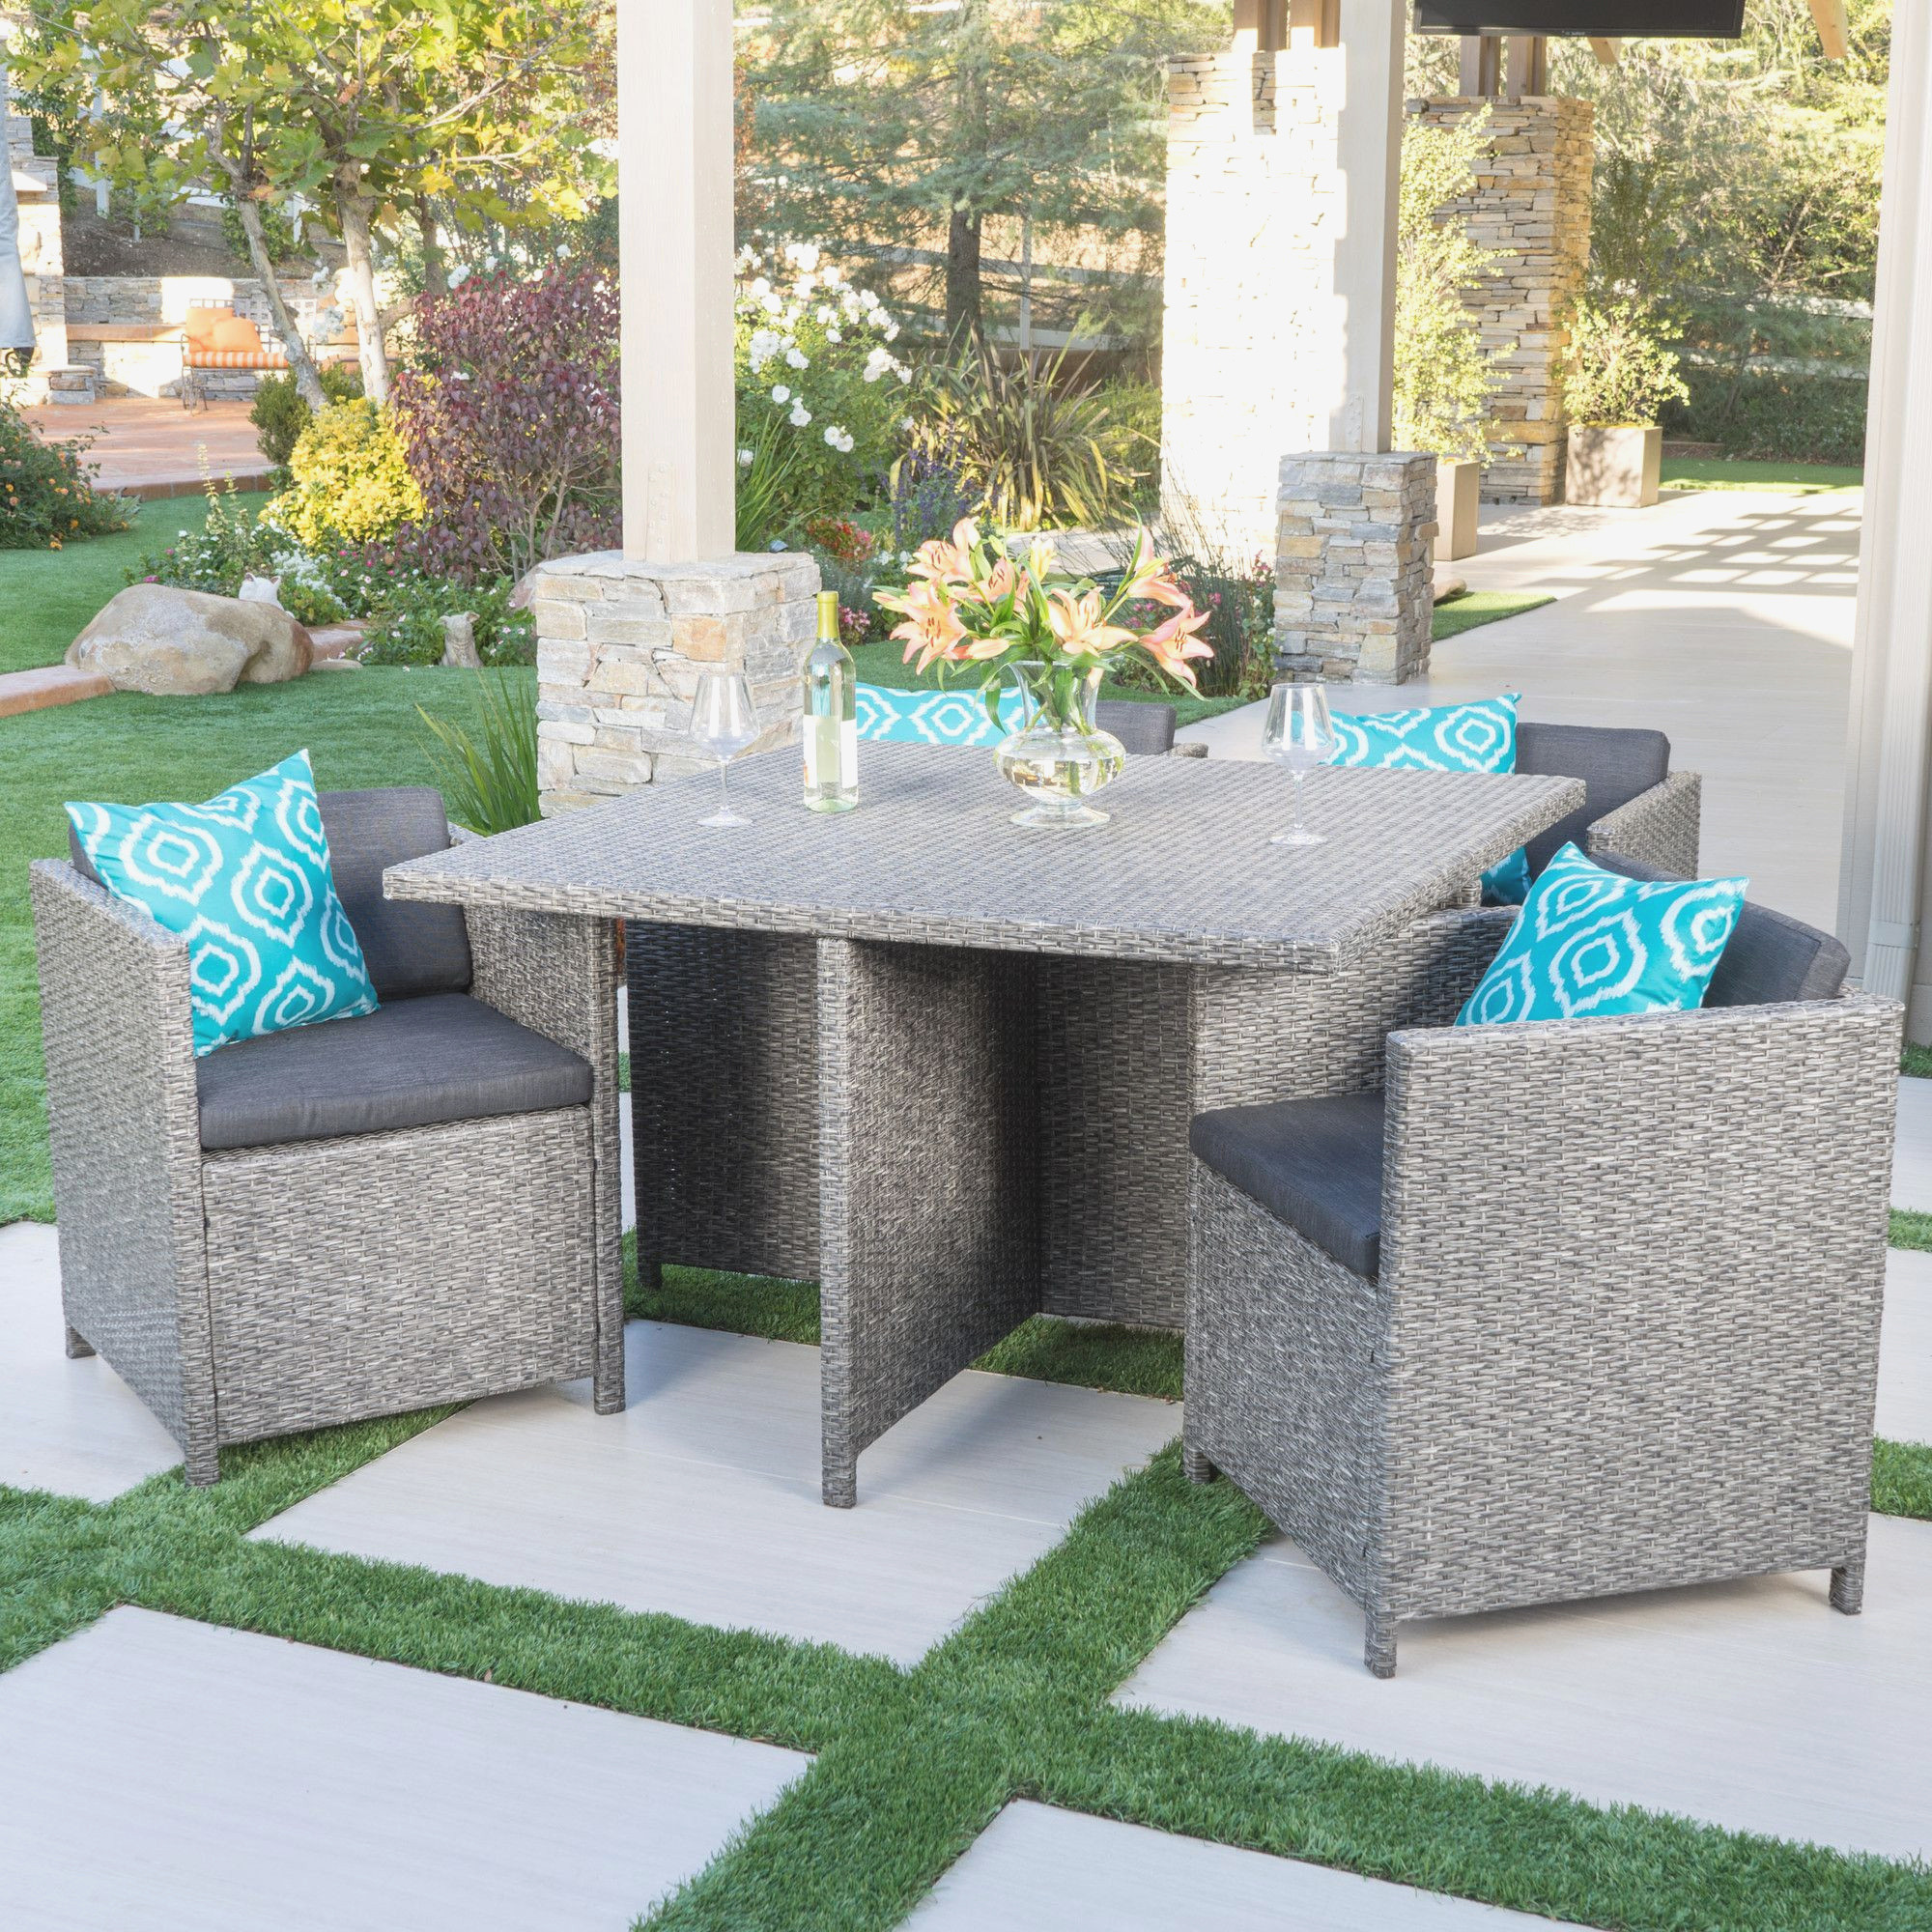 rona hardwood flooring of rona patio sets in outdoor patio furniture sets menards elegant patio box best wicker outdoor sofa 0d patio chairs sale